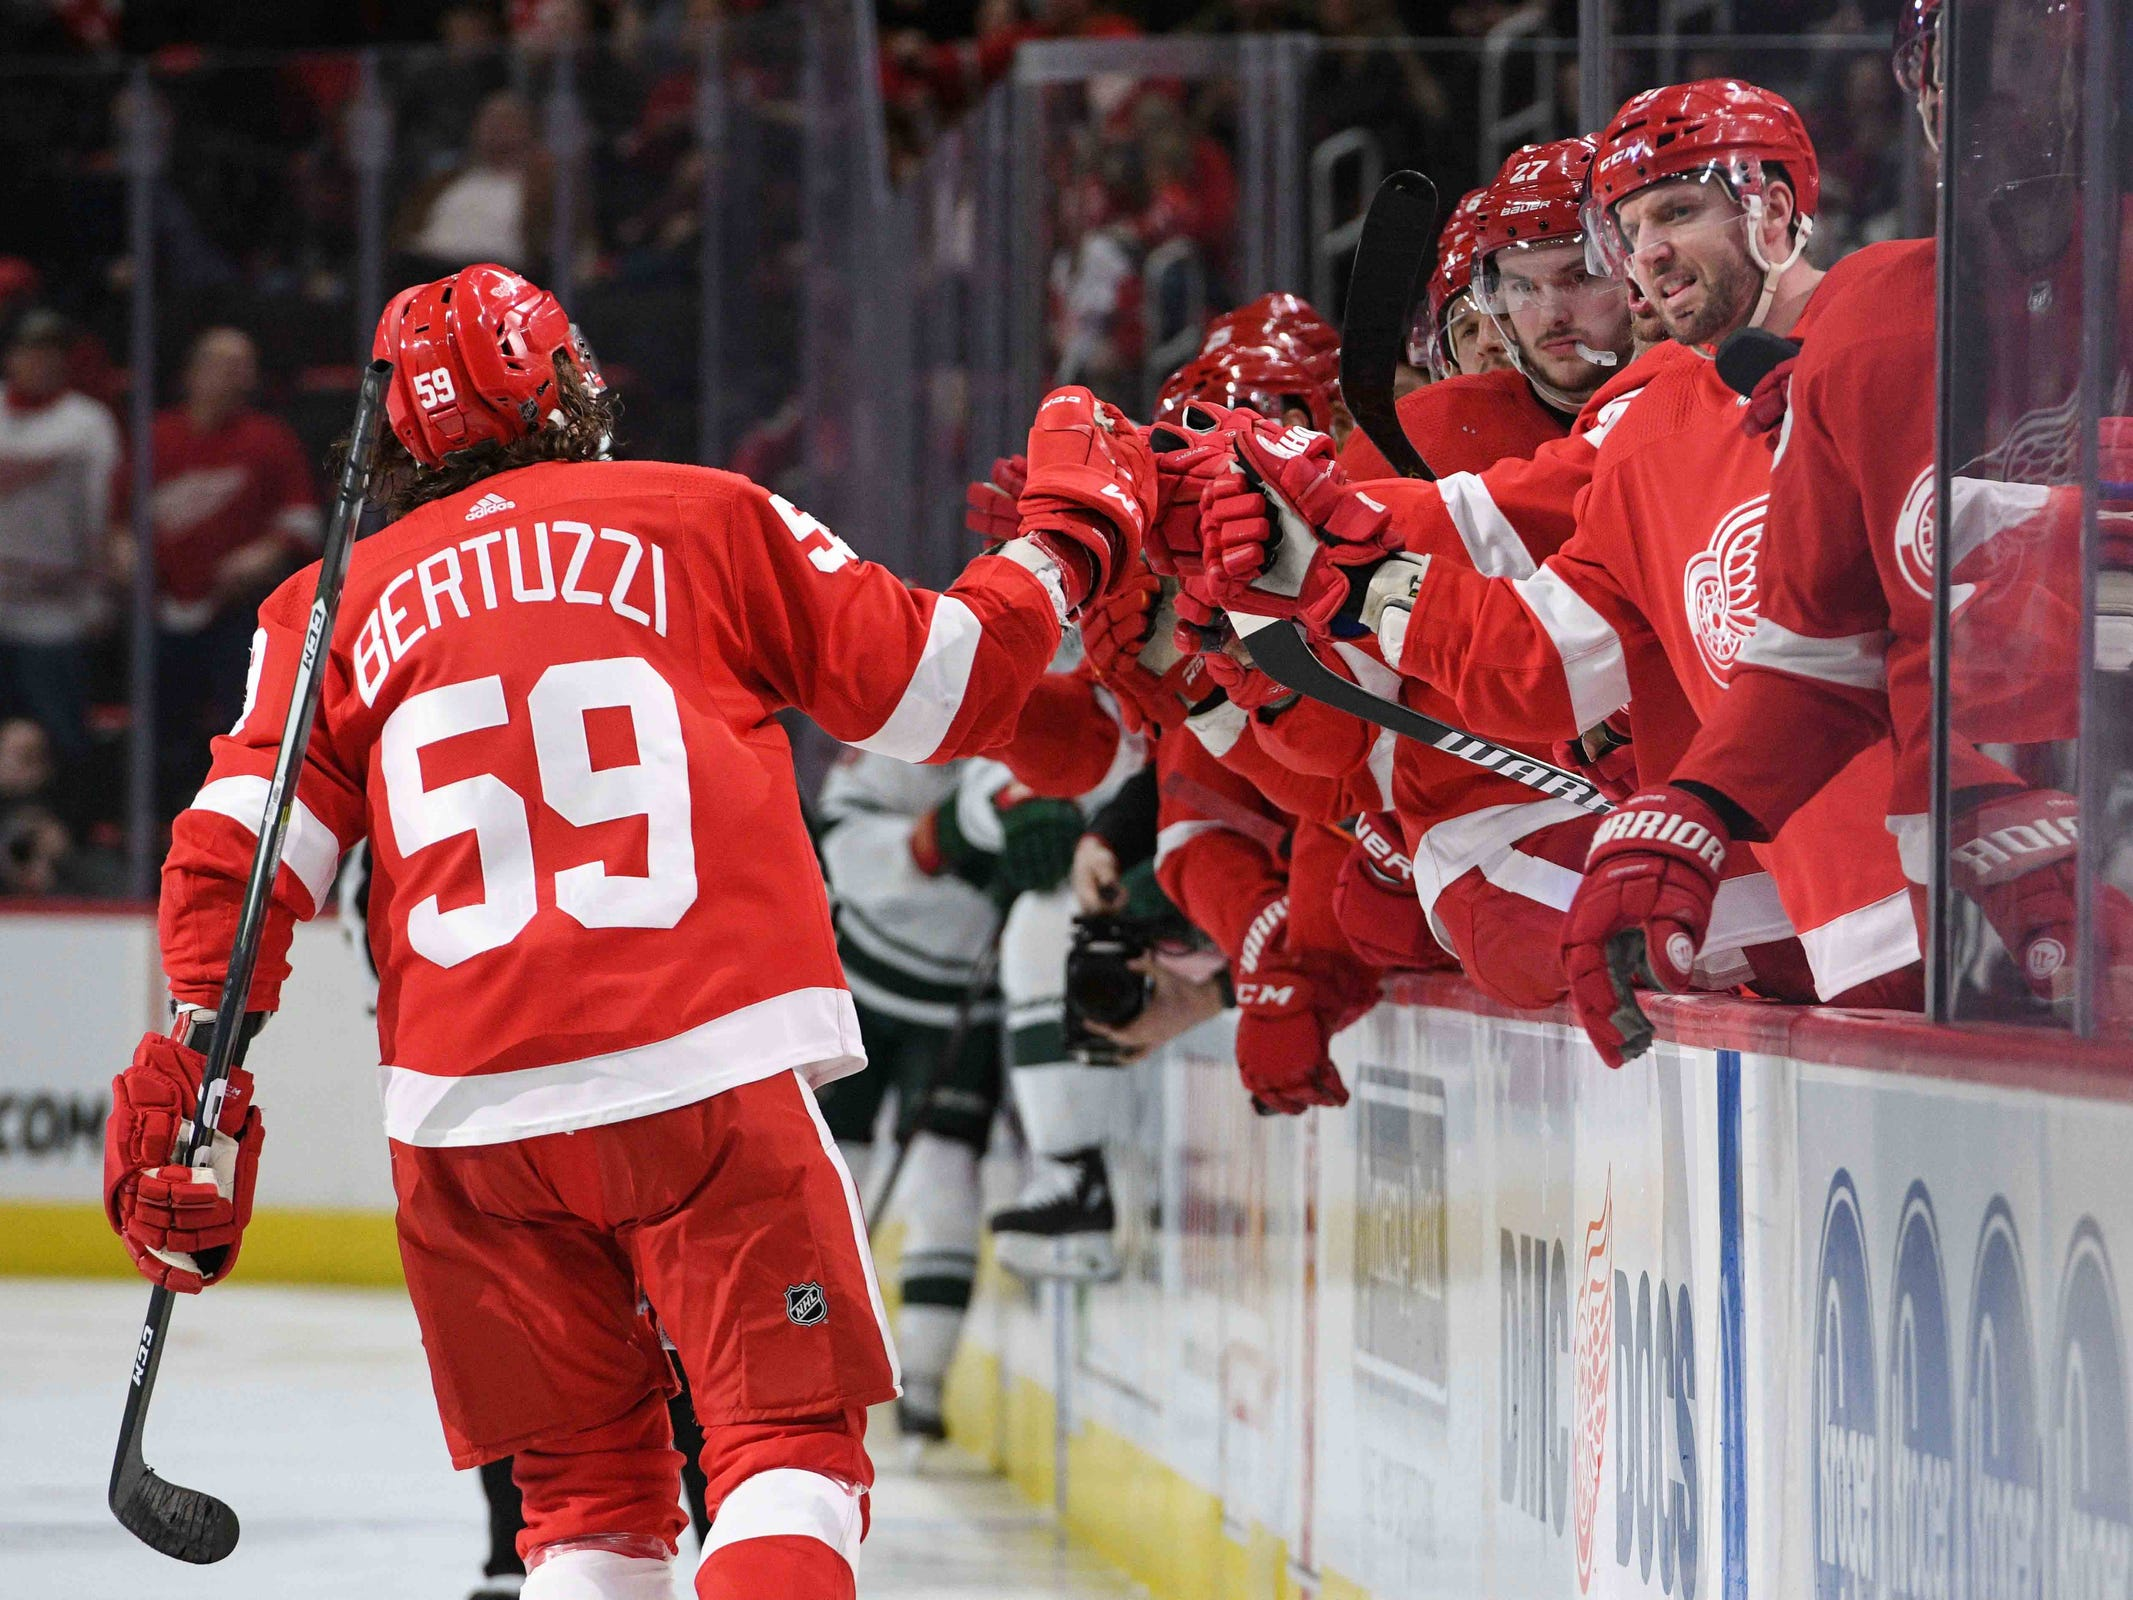 Detroit Red Wings left wing Tyler Bertuzzi (59) celebrates his goal with teammates during the second period against the Minnesota Wild at Little Caesars Arena on Feb. 22, 2019.